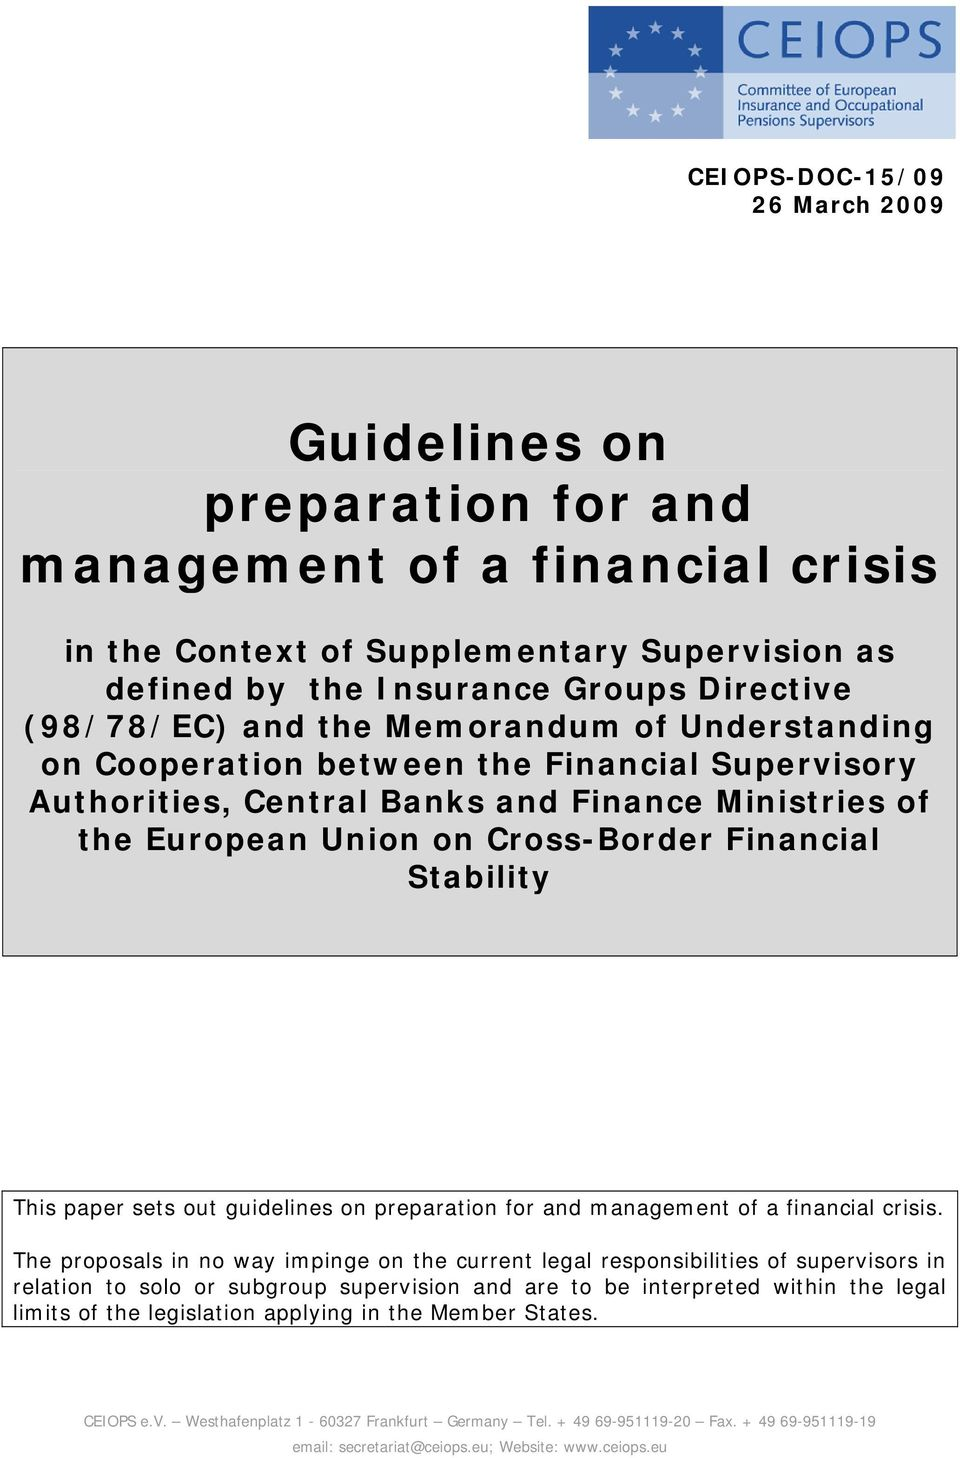 paper sets out guidelines on preparation for and management of a financial crisis.